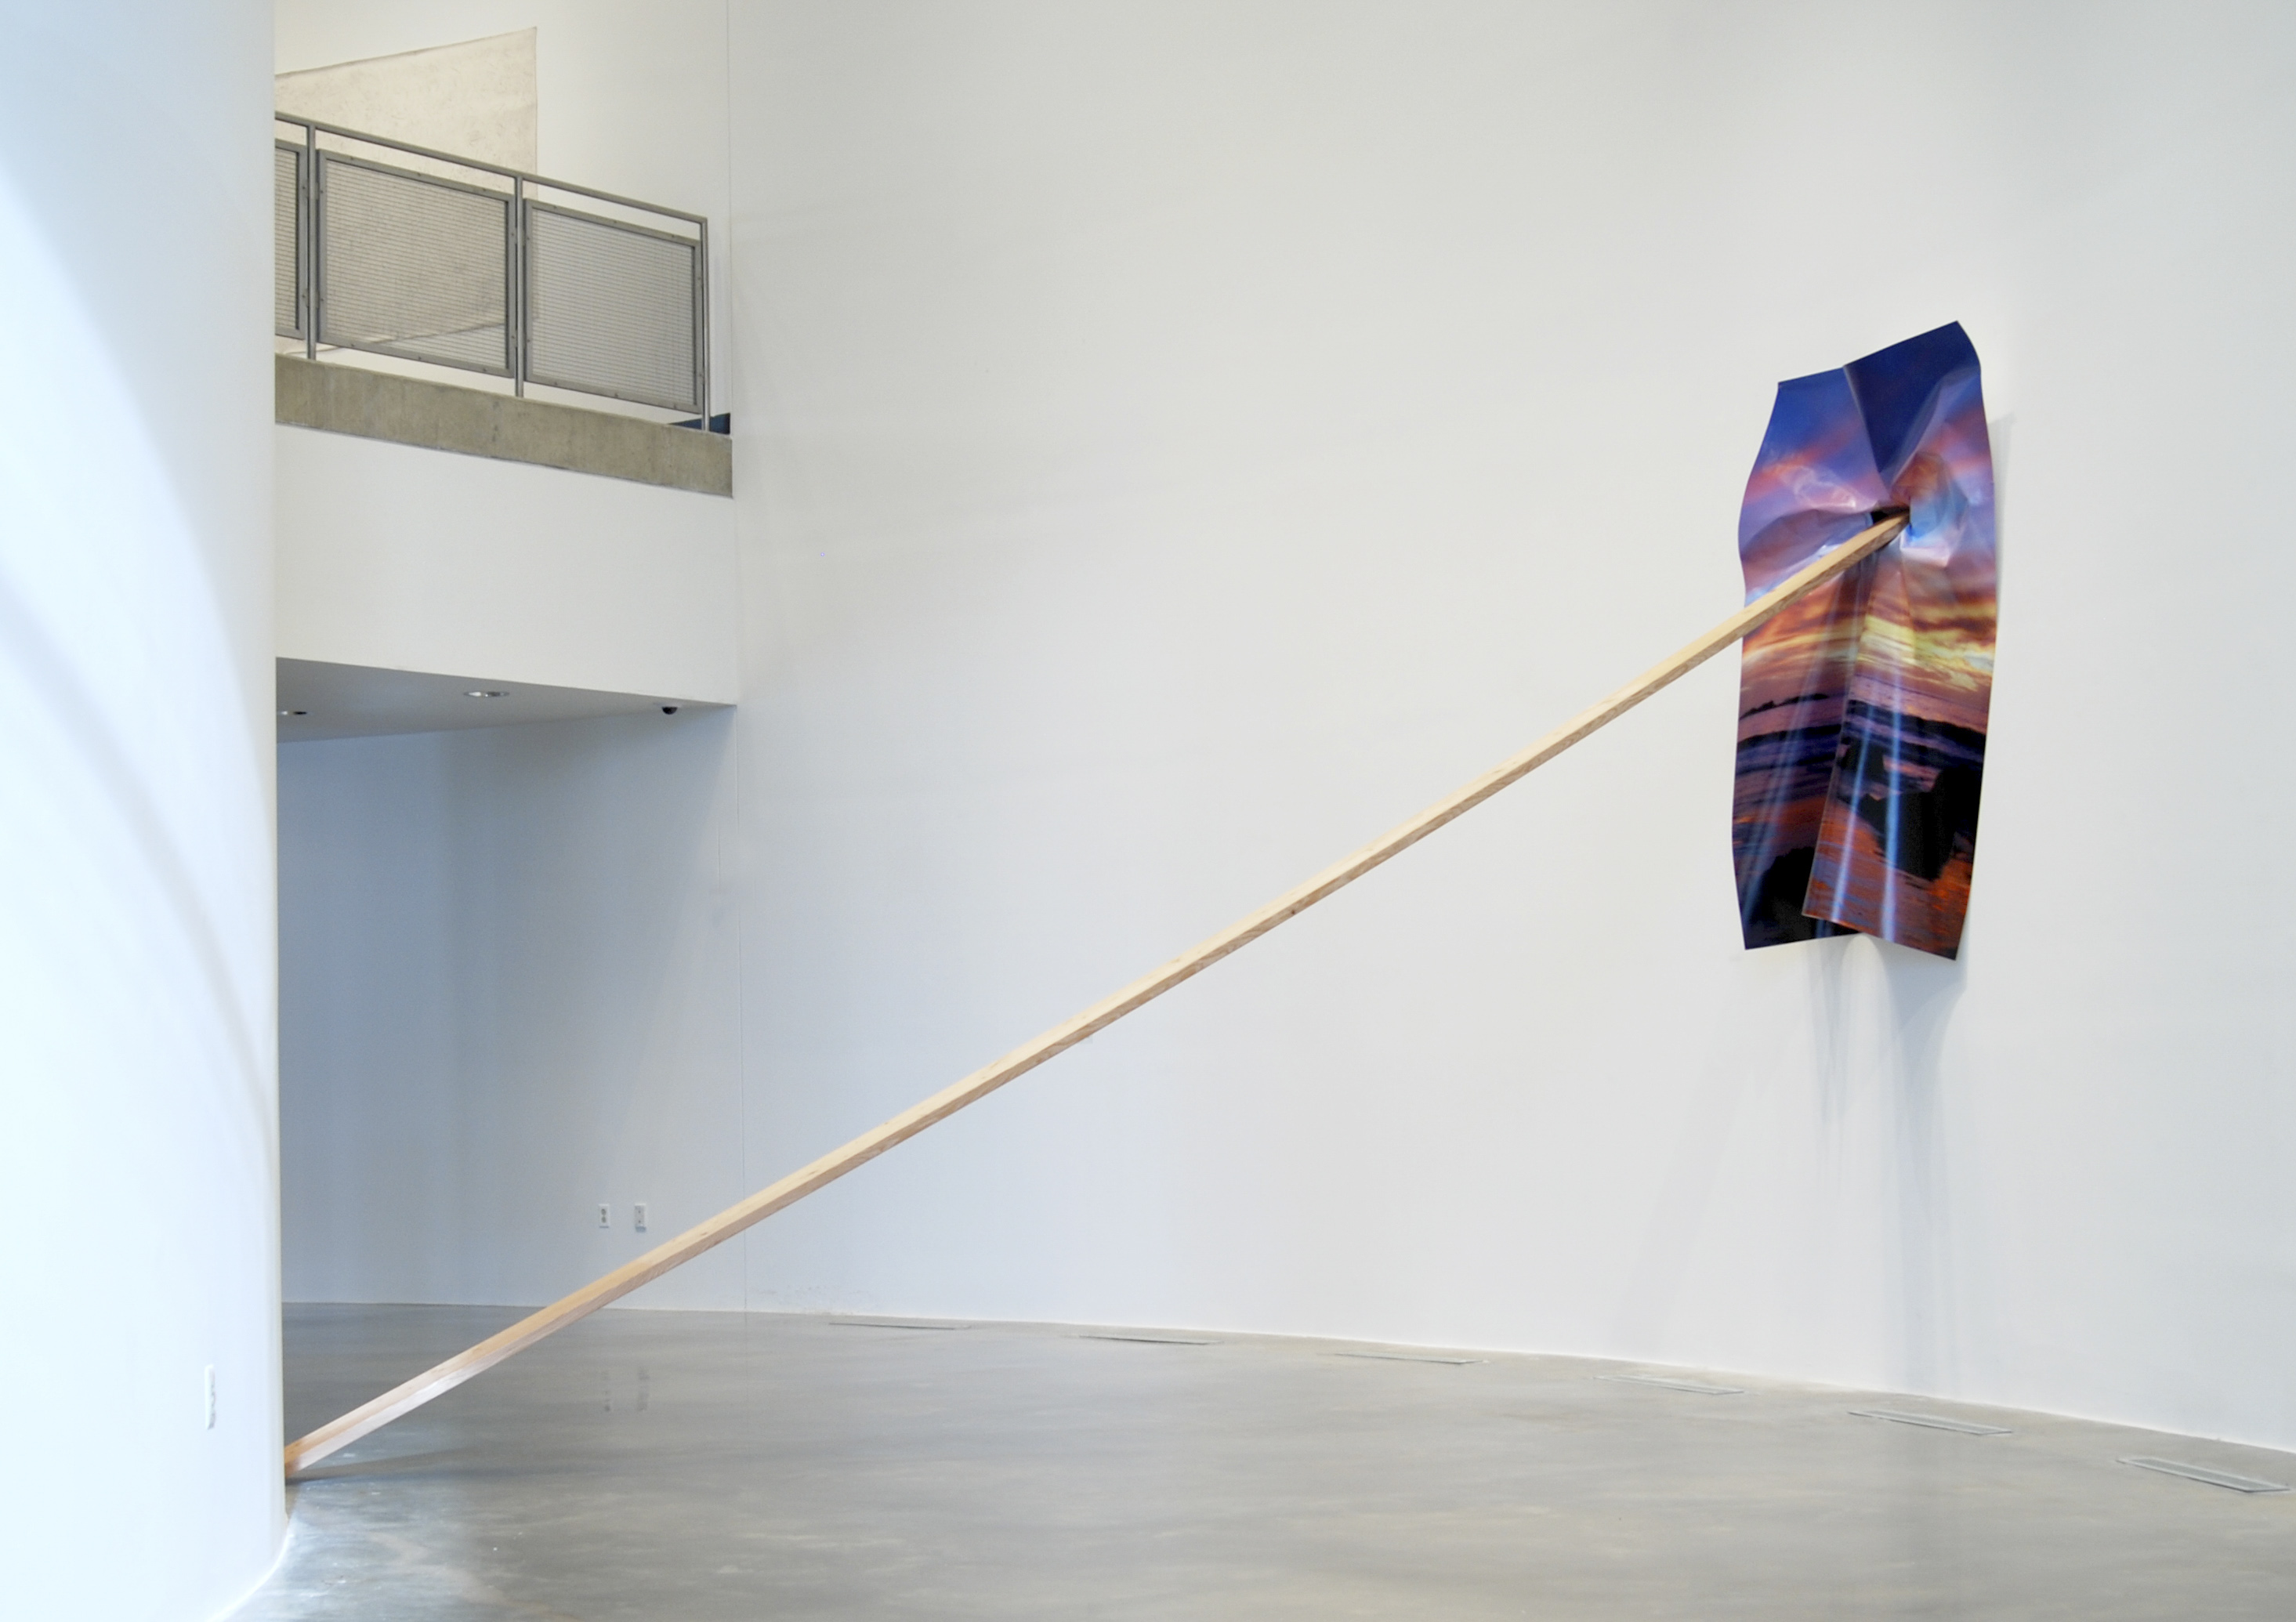 California Sunset Lean, 2014 digital print on vinyl, wood, hole in wall Installation approx 12' x 6' x 18'. Print size: 6' x 8' Installation view of Ad Infinitum, American University Museum at the Katzen Arts Center, Washington, DC. | Courtesy of Letha Wilson